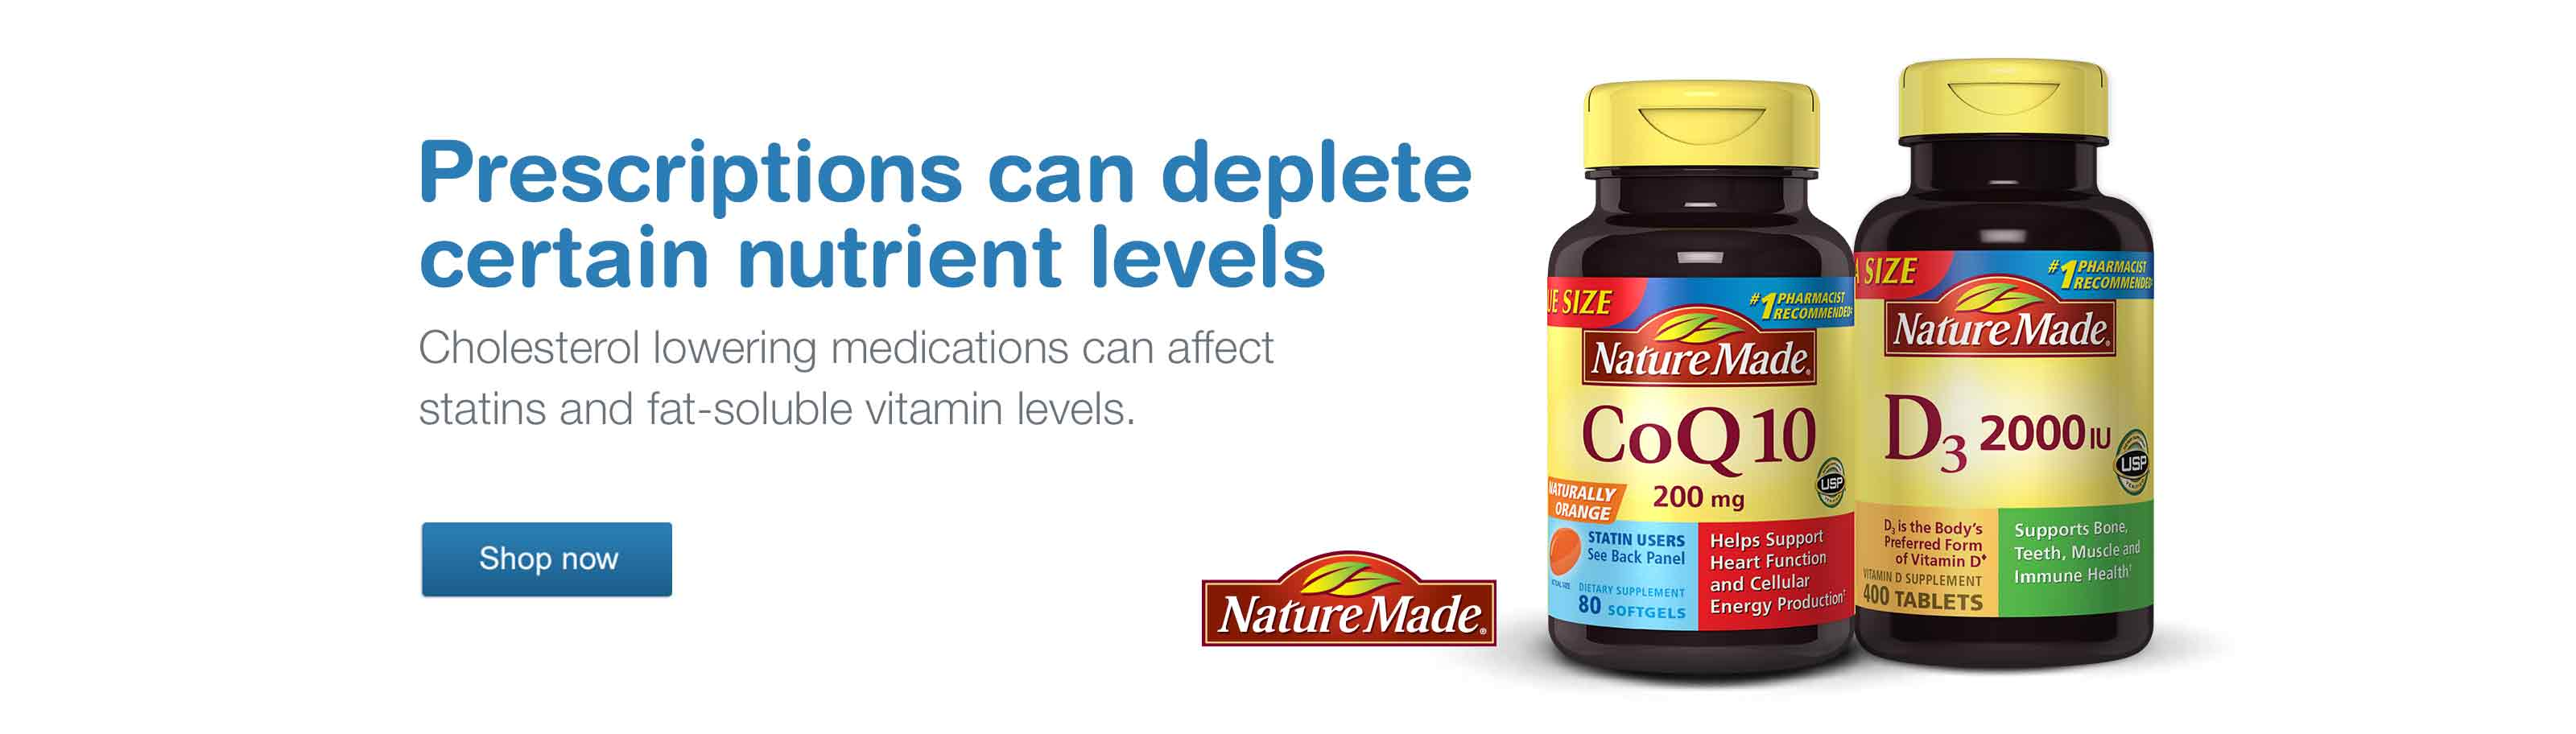 Prescriptions can deplete certain nutrient levels. Cholestorol lowering medications can affect statins and fat-soluble vitamin levels. Nature Made. Shop now.